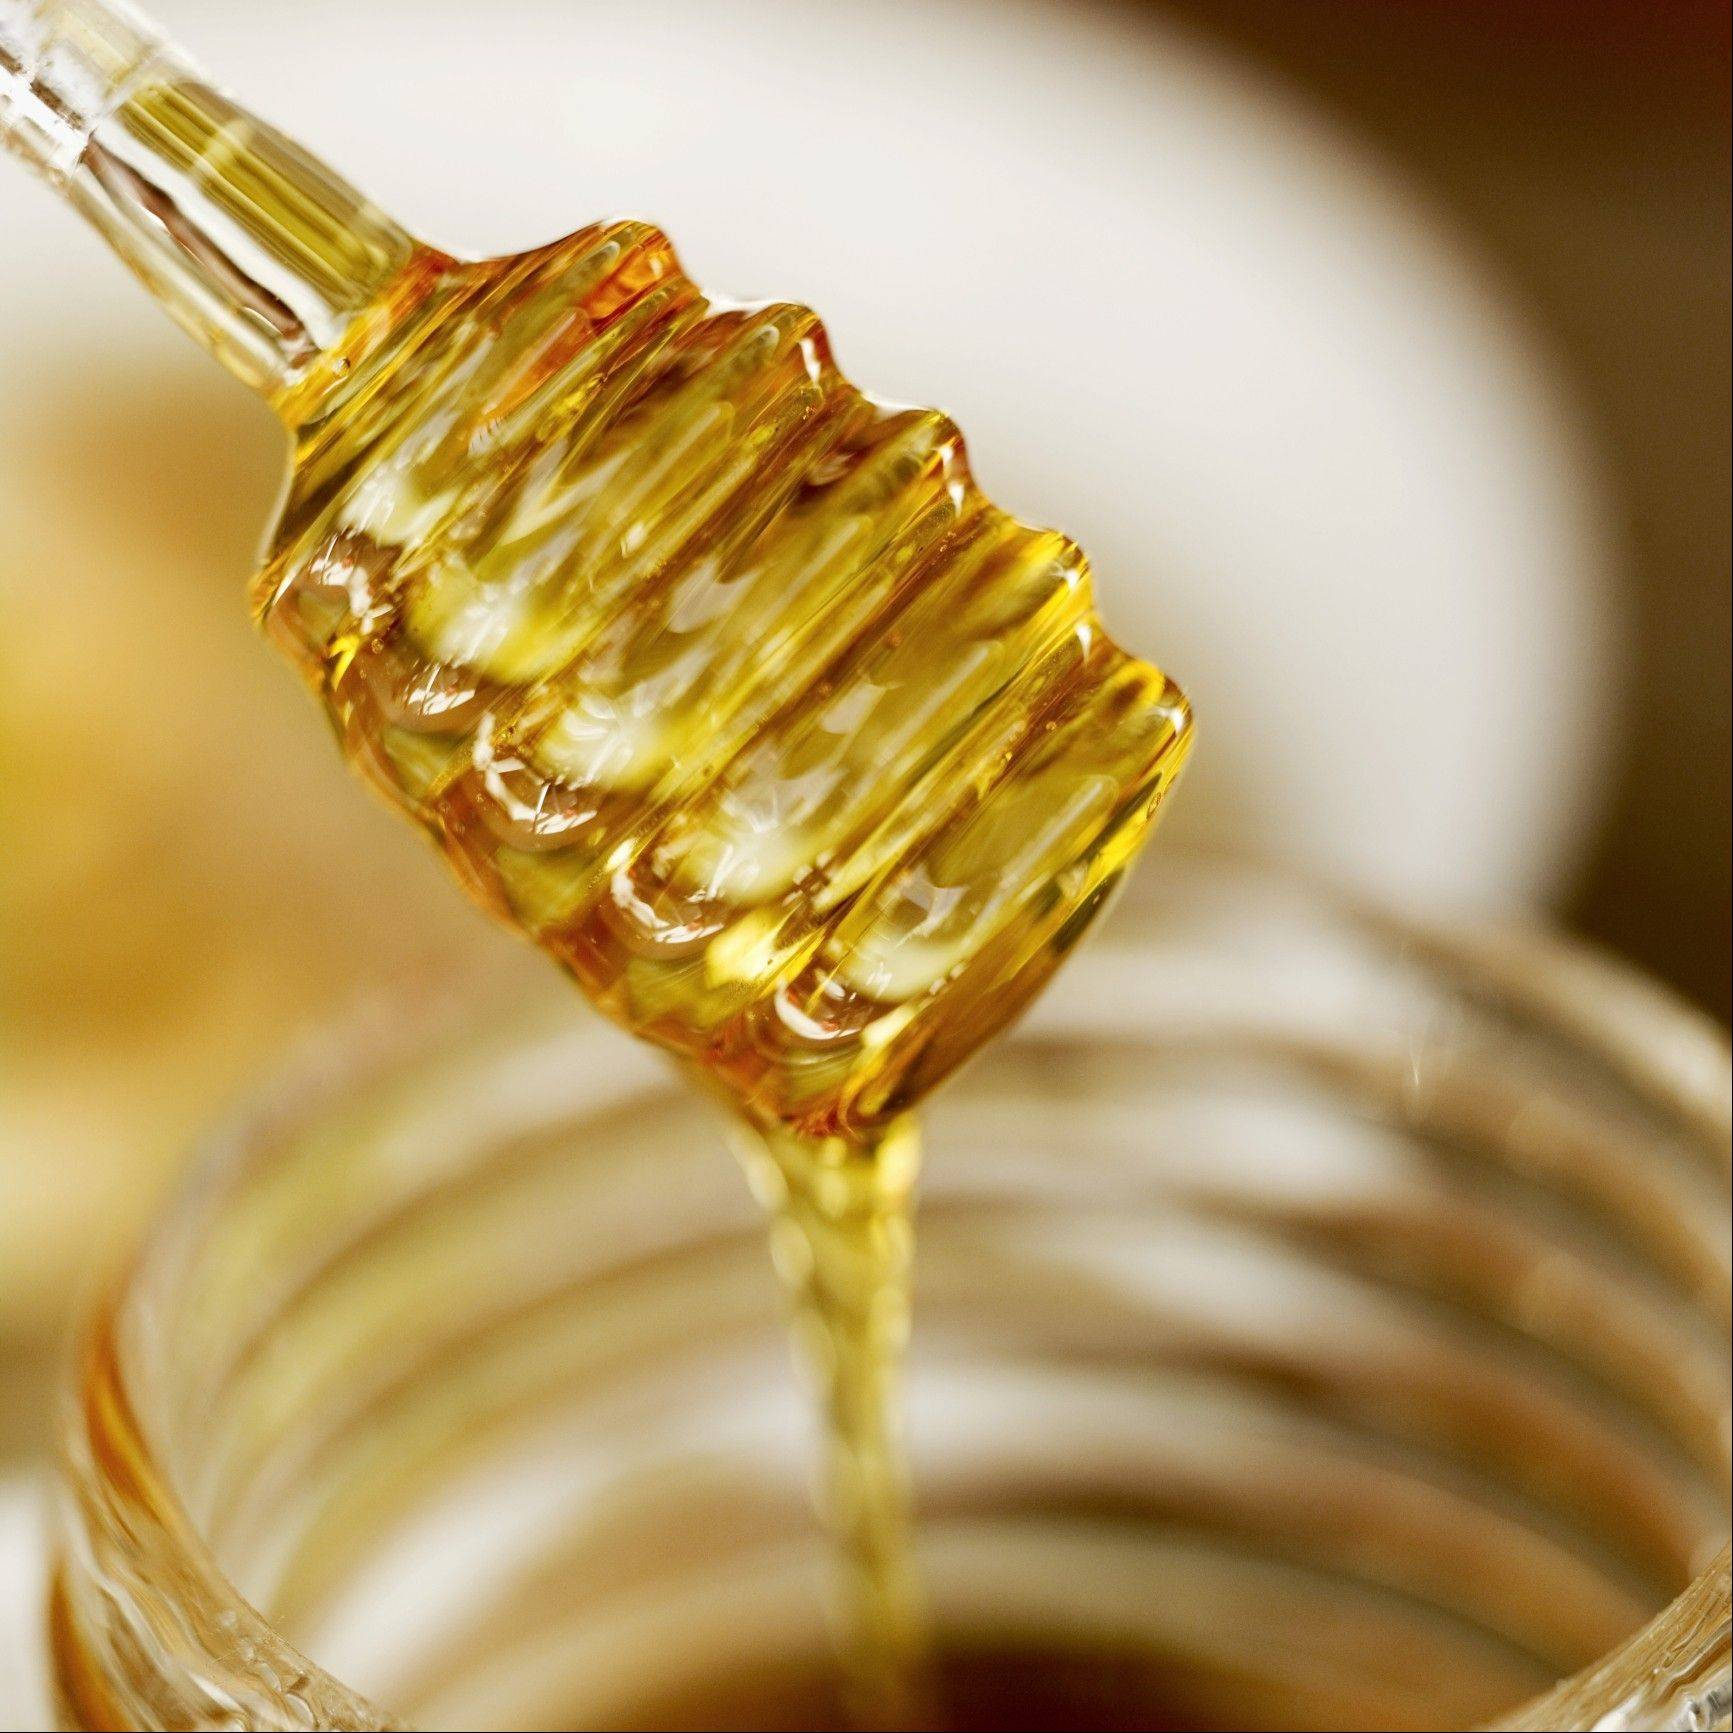 Honey has many healthy benefits, from helping you sleep to exfoliating your skin.